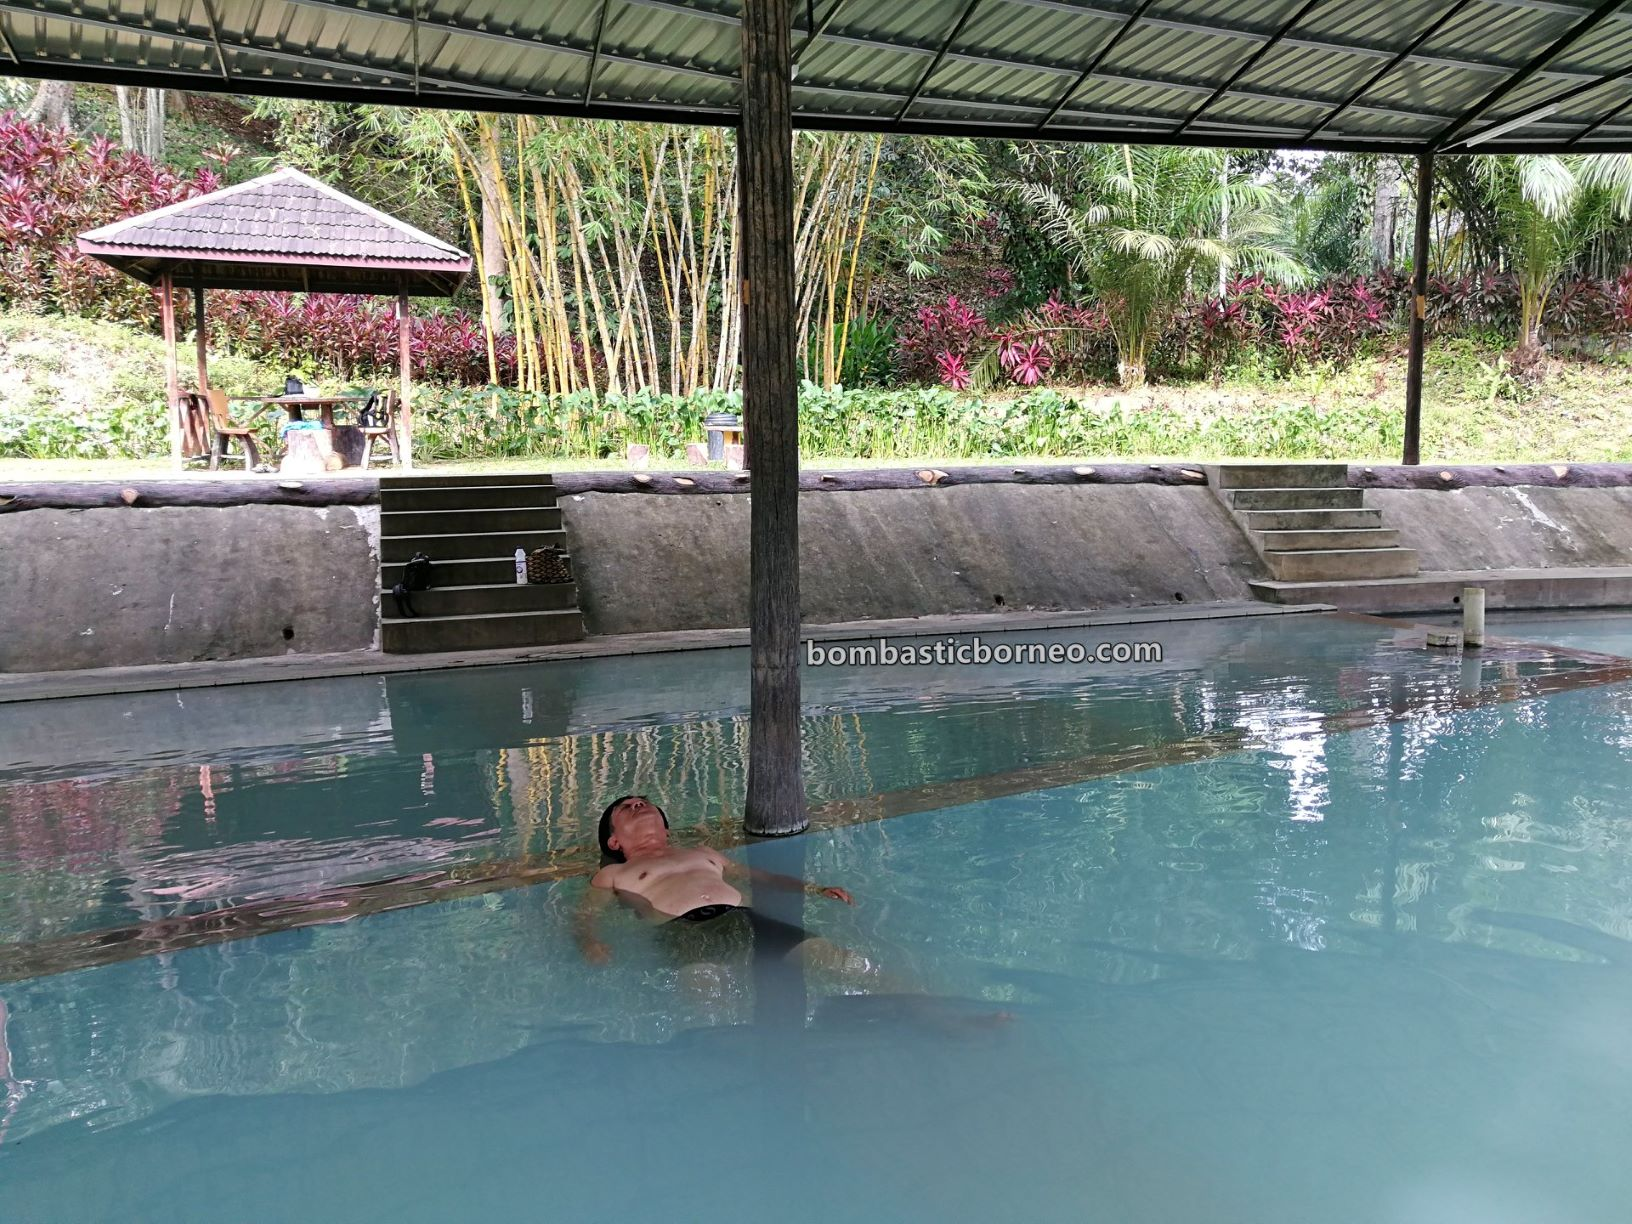 Sankina Hotspring Park, healthy, detox, nature, outdoor, recreational, water park, family vacation, holiday, tourist attraction, Travel guide, Borneo, 穿越婆罗洲沙巴, 善勤温泉乐园, 斗湖旅游景点